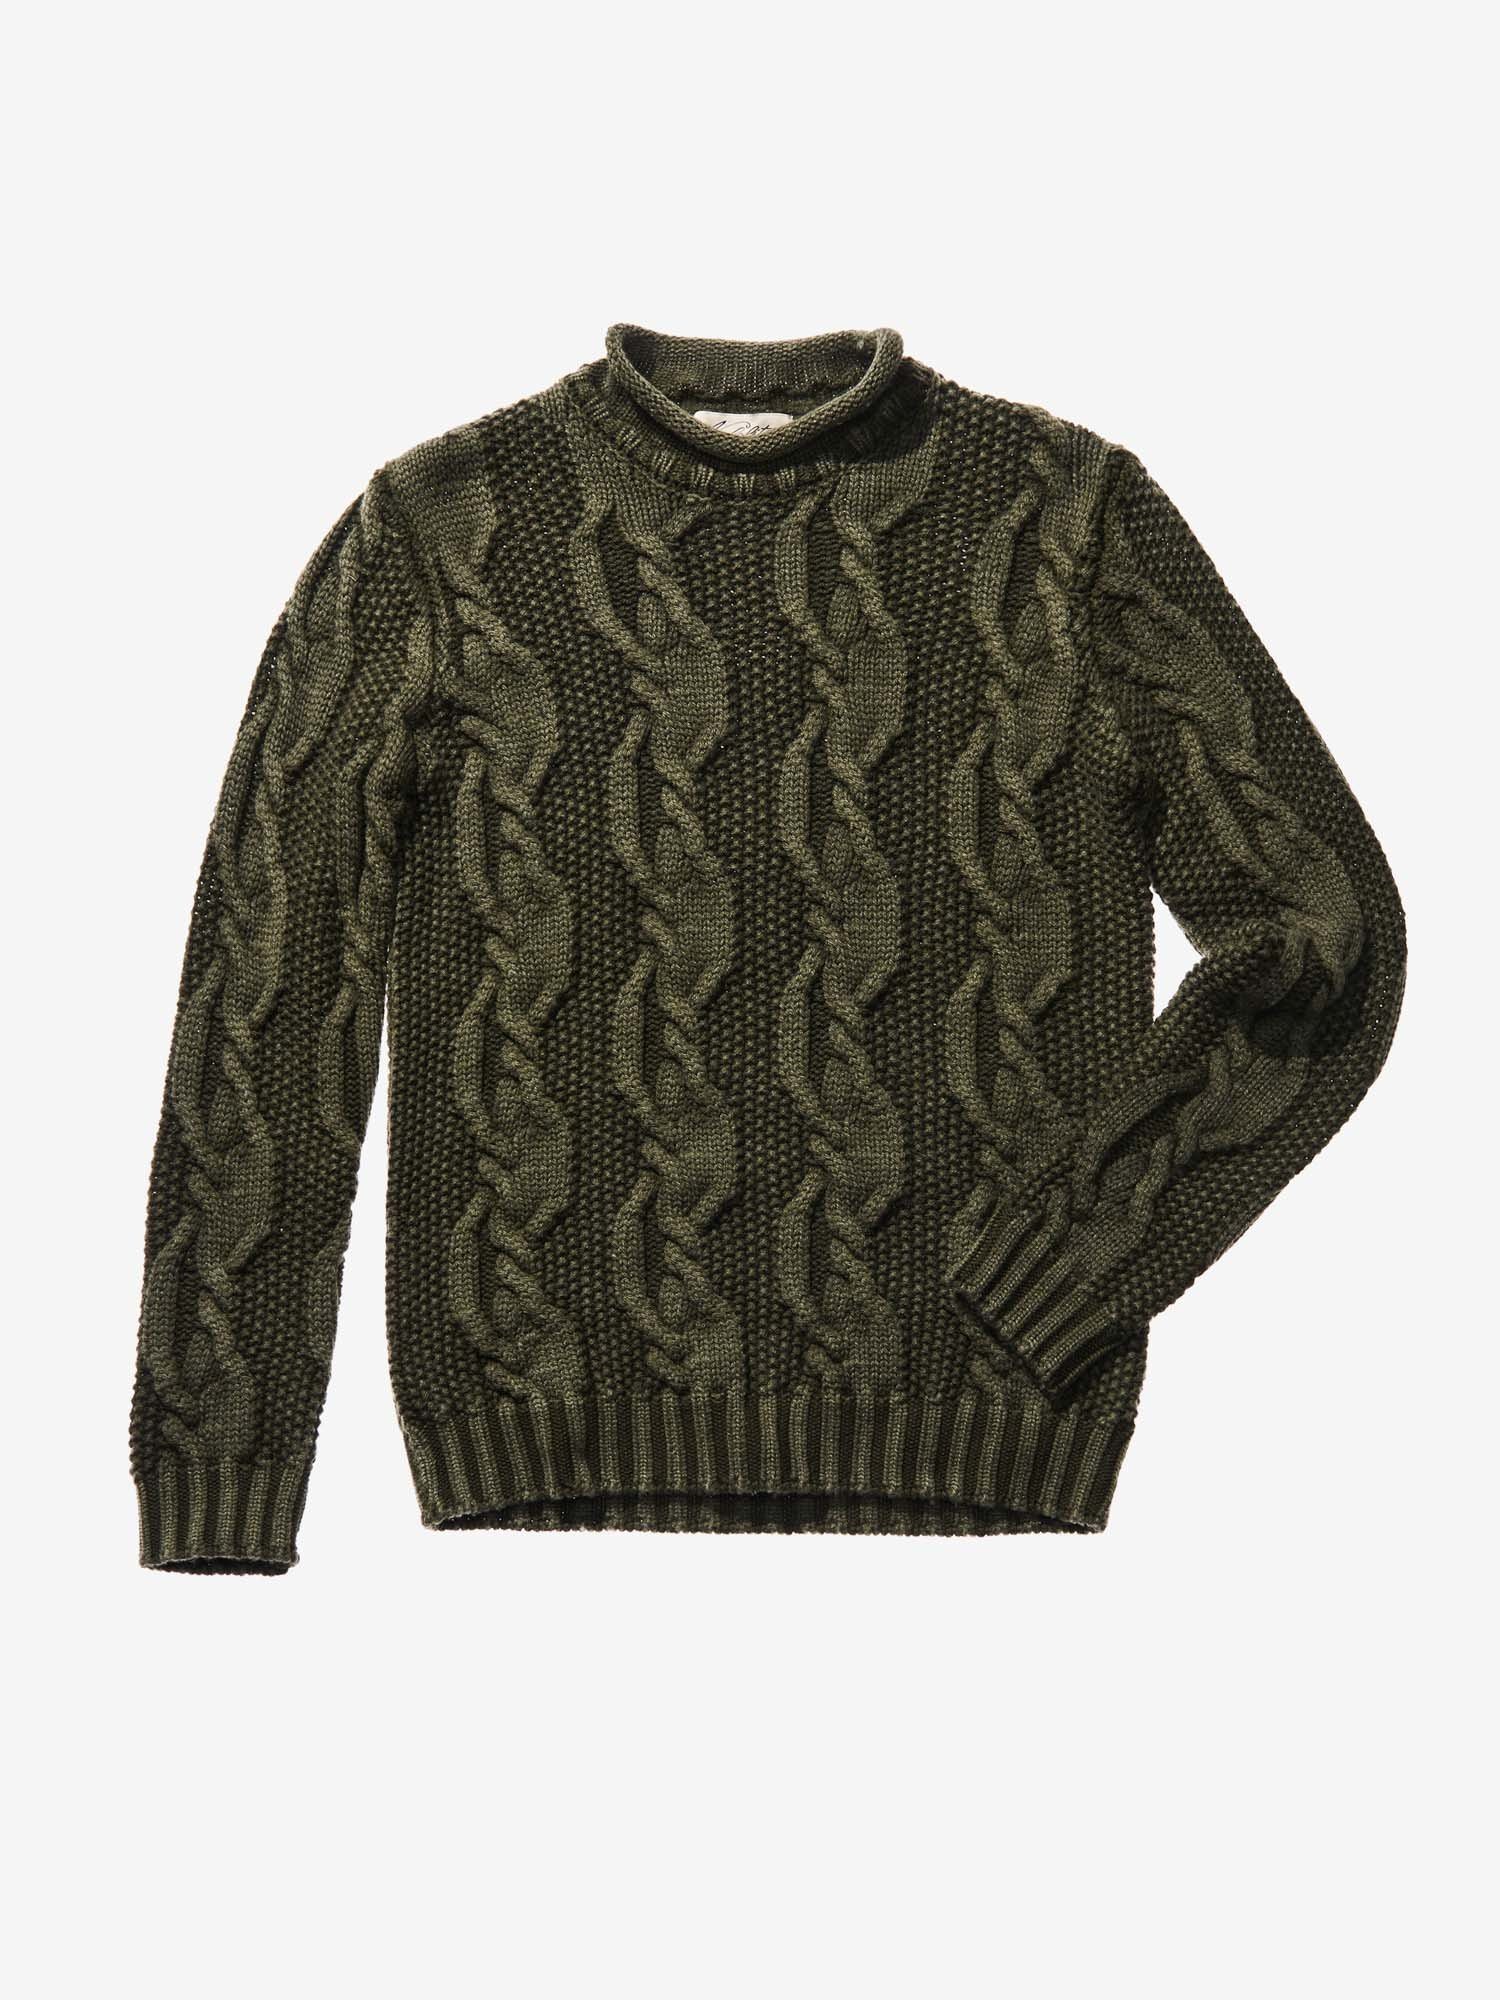 CHUNKY CABLE KNIT JUMPER IN KHAKI - Blauer